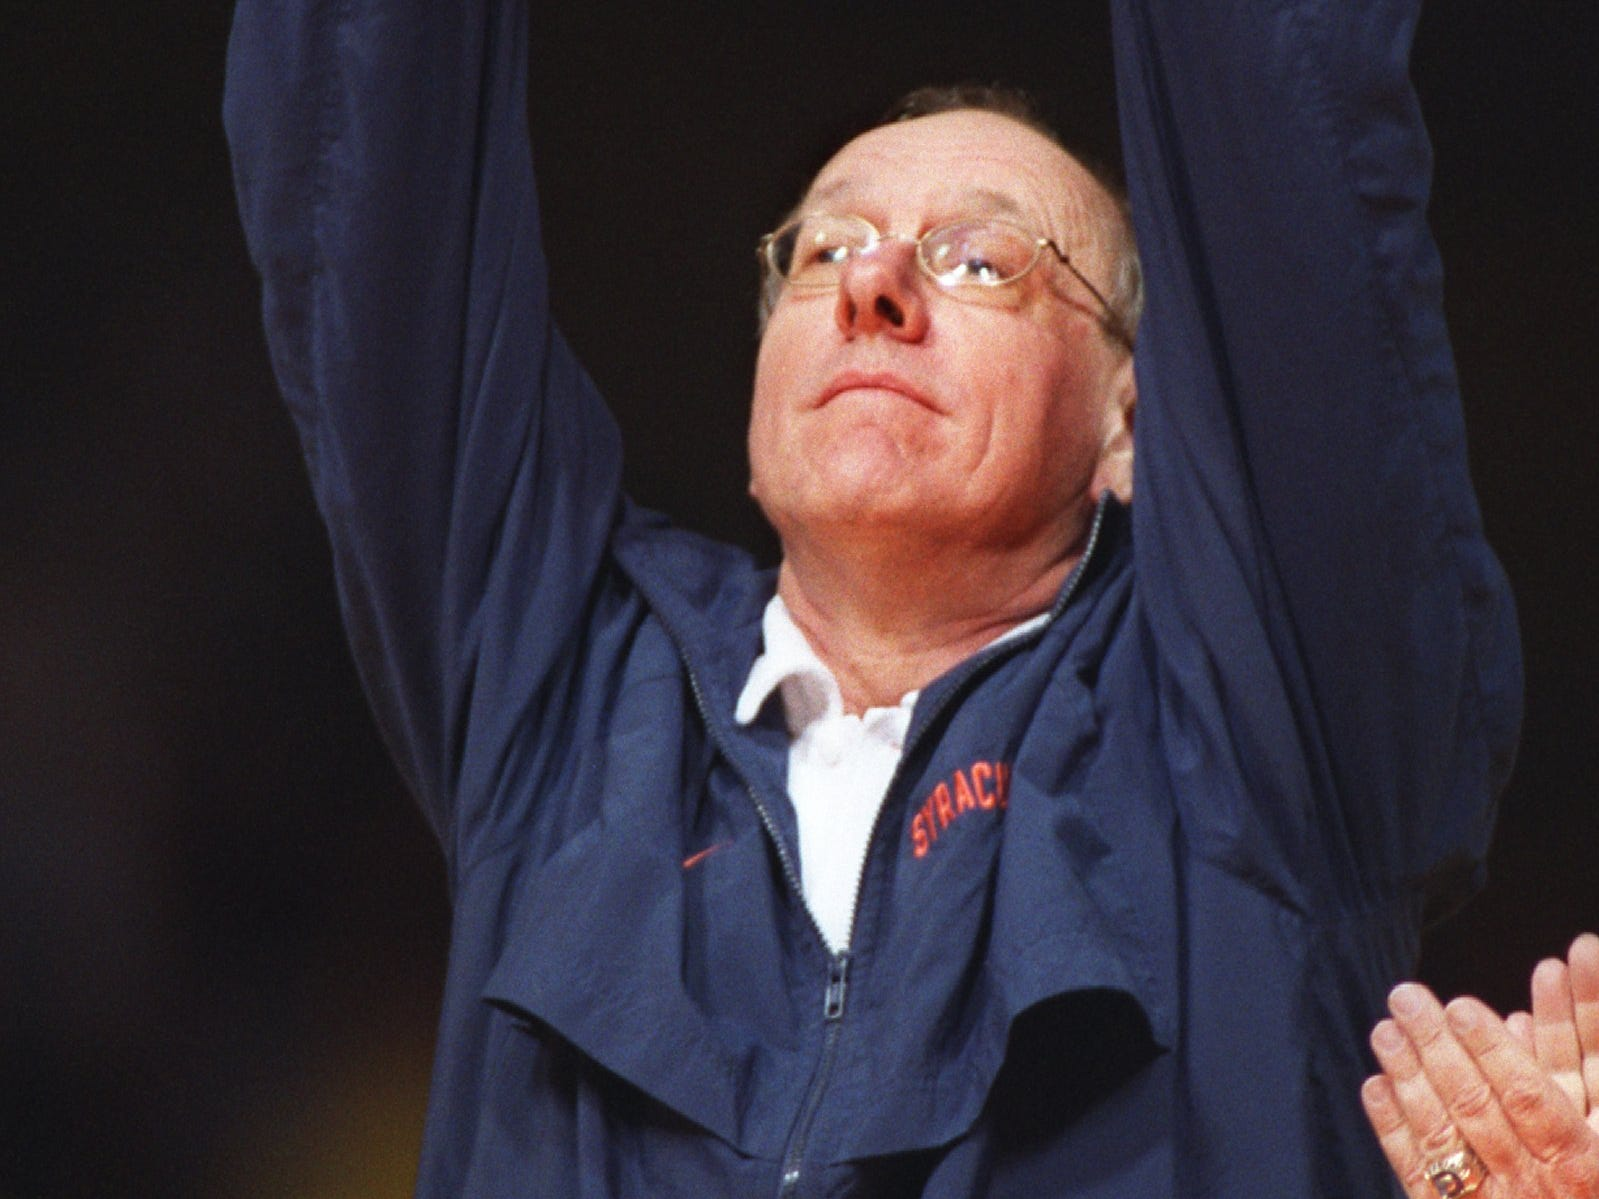 2003: Syracuse head basketball Jim Boeheim holds up the National Association of Basketball Coaches national championship trophy during an open celebration of the the Syracuse Orangemen's national championship Thursday, April 10, 2003, at the Carrier Dome in Syracuse, N.Y. (AP Photo/Post Standard, Jim Commentucci)